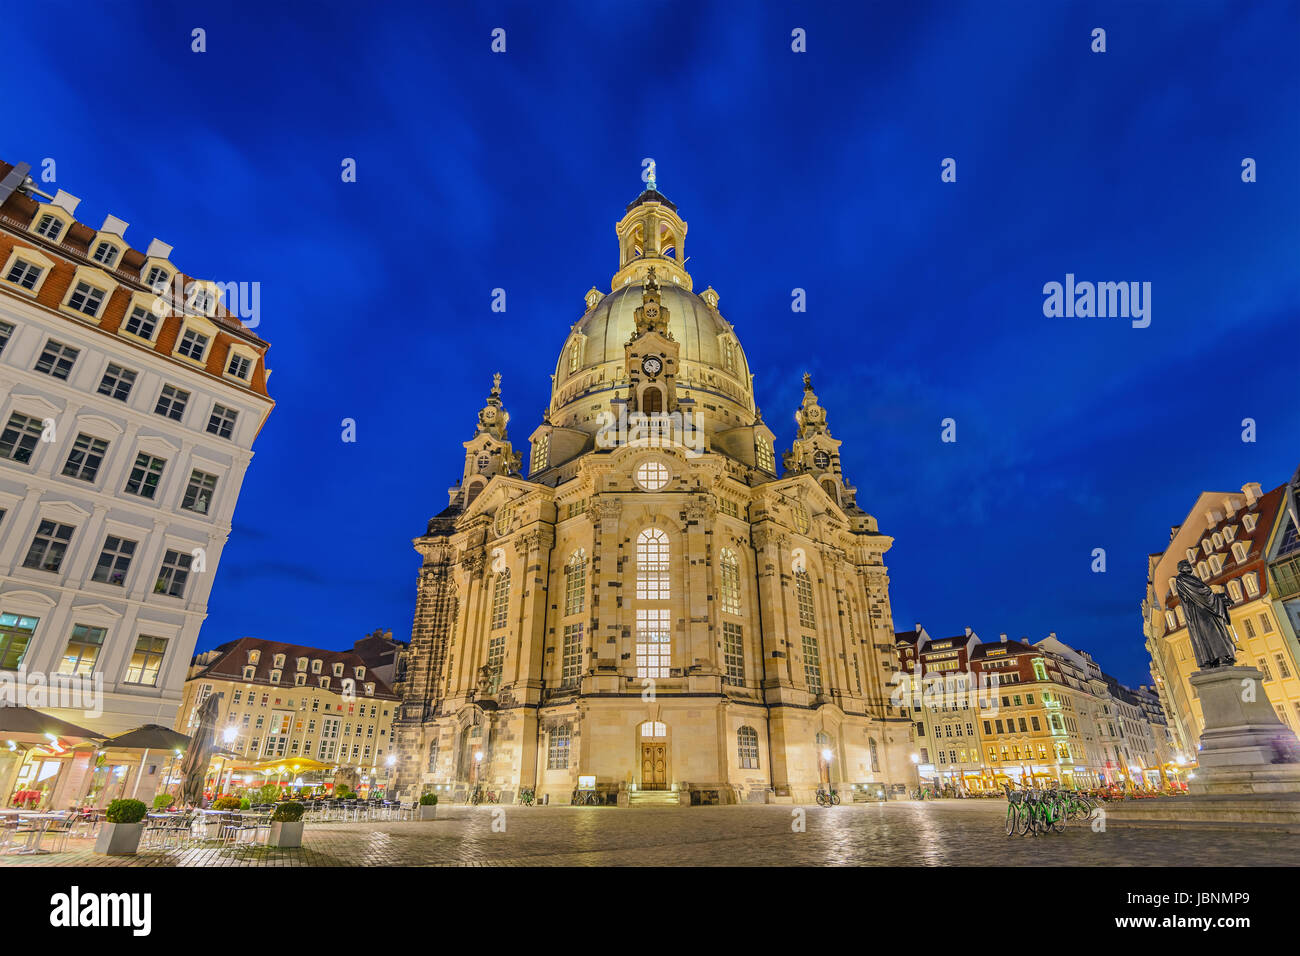 Dresden Frauenkirche (Church of our lady) at night, Dresden, Germany Stock Photo